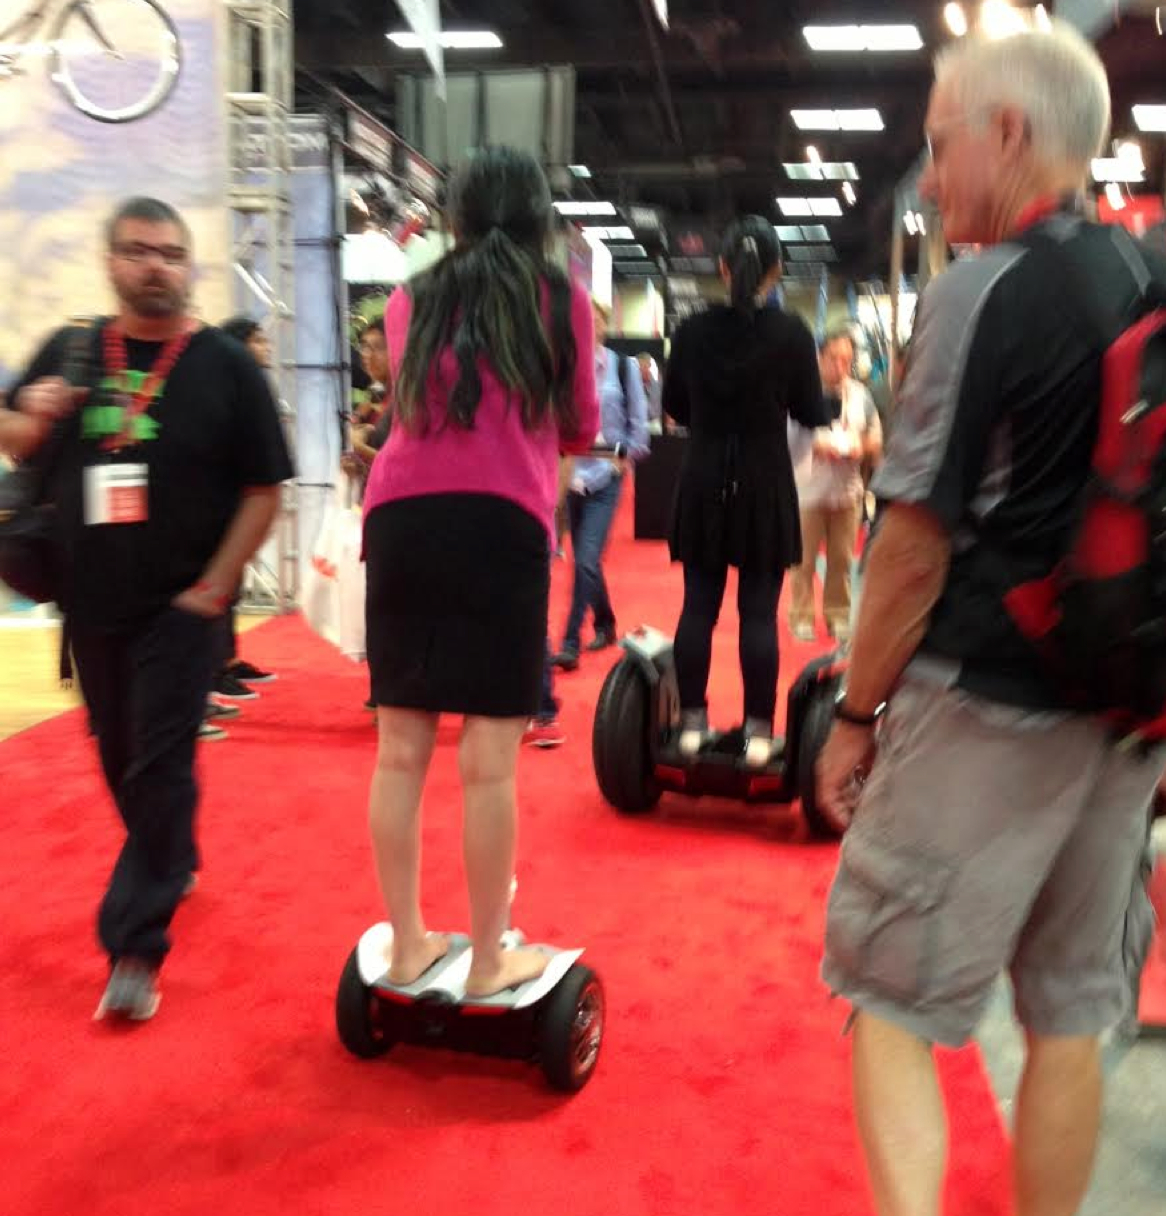 Barefoot Mini-skirt Segway Schralping - Interbike Part 2